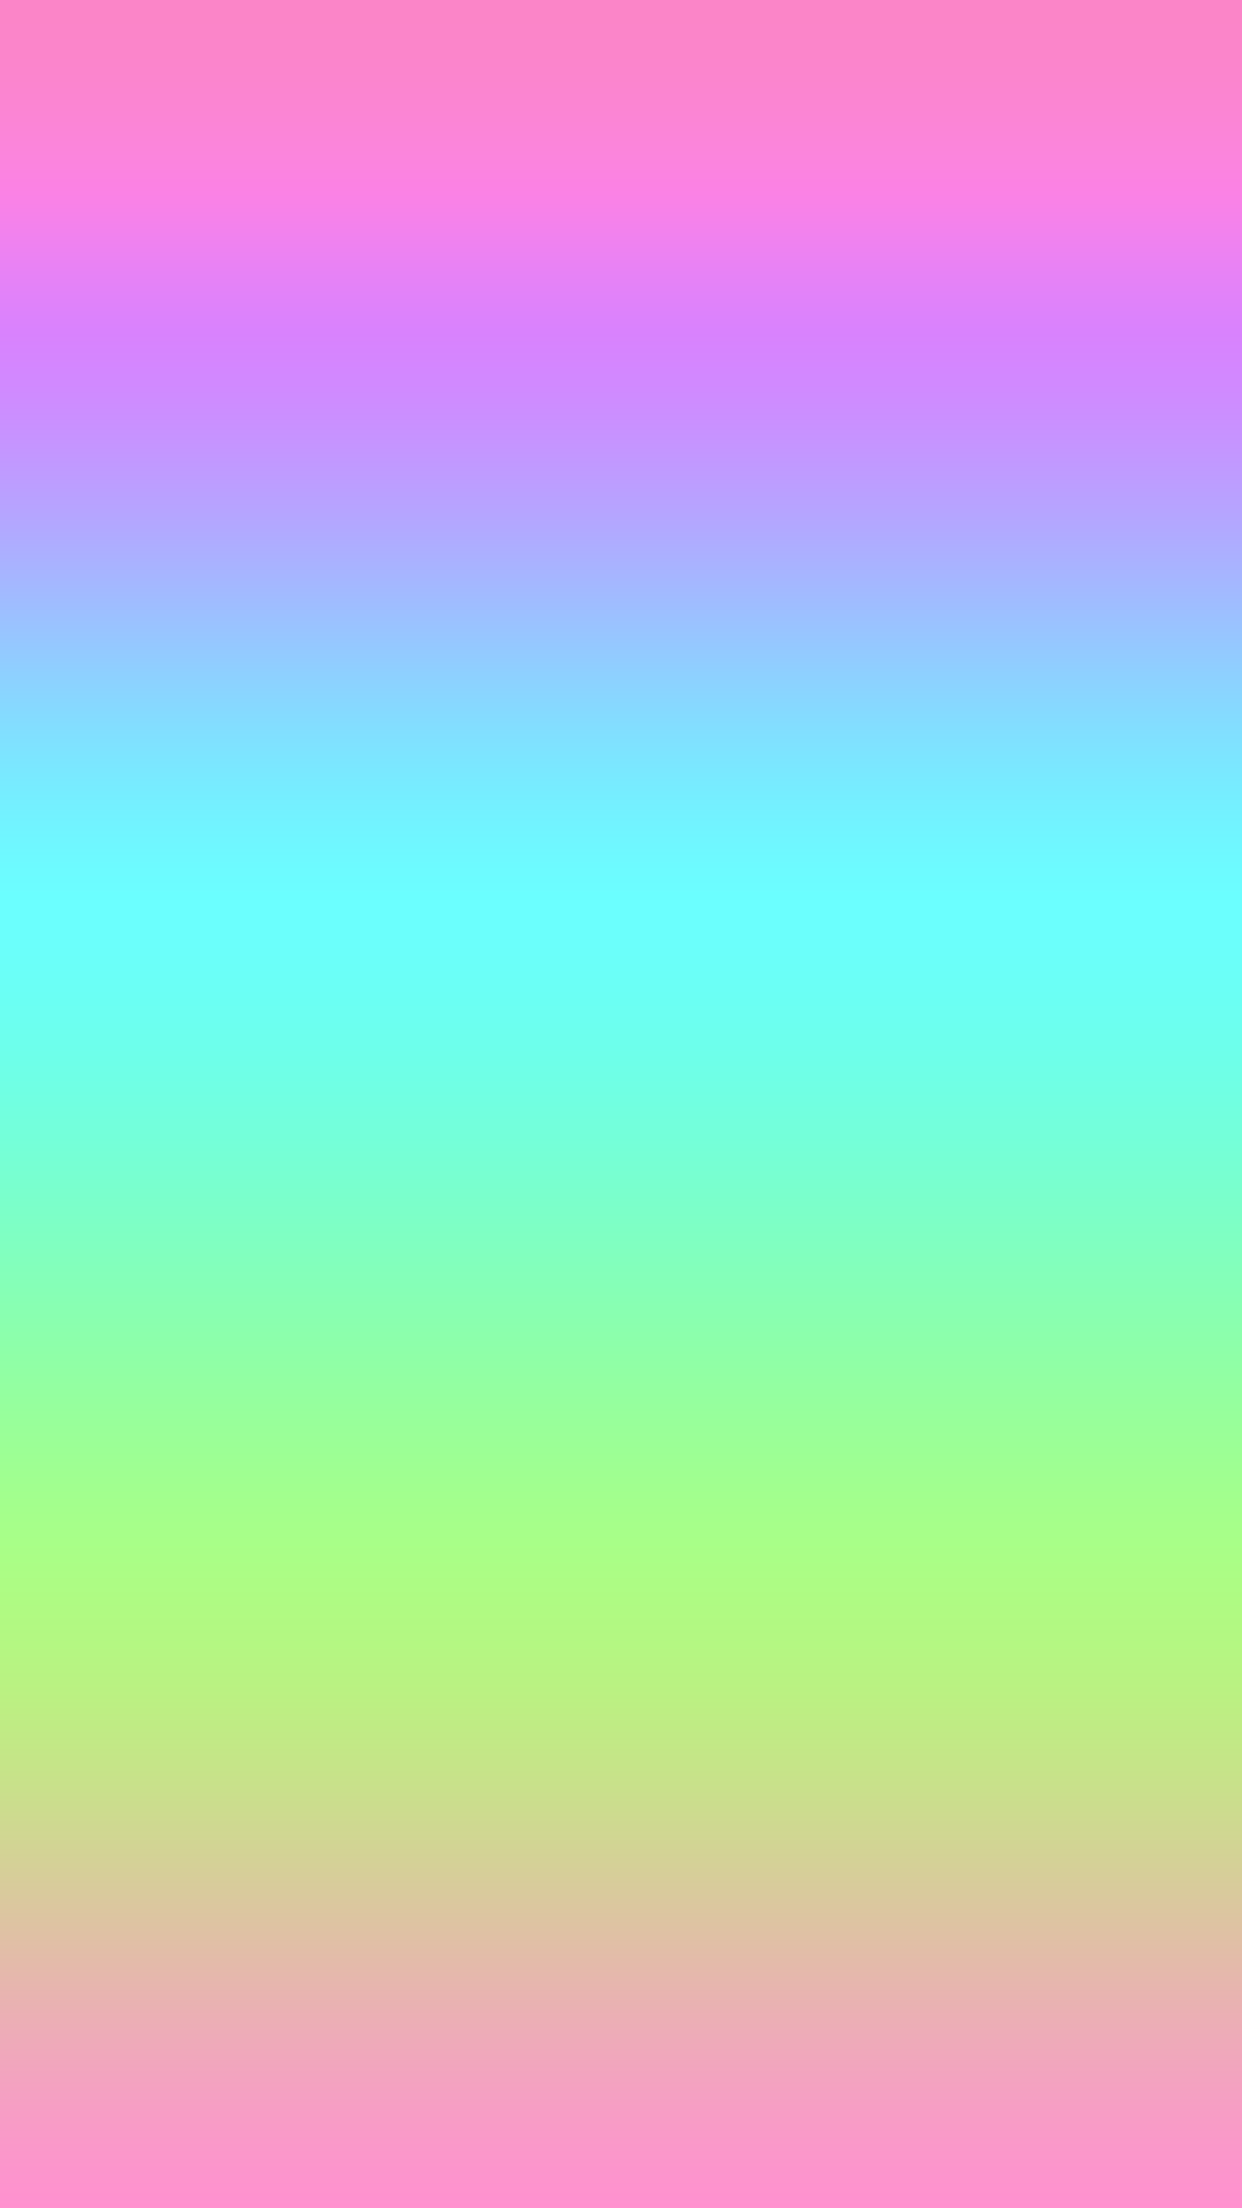 Gradient ombre pink blue purple green wallpaper hd Ombre aqua wallpaper